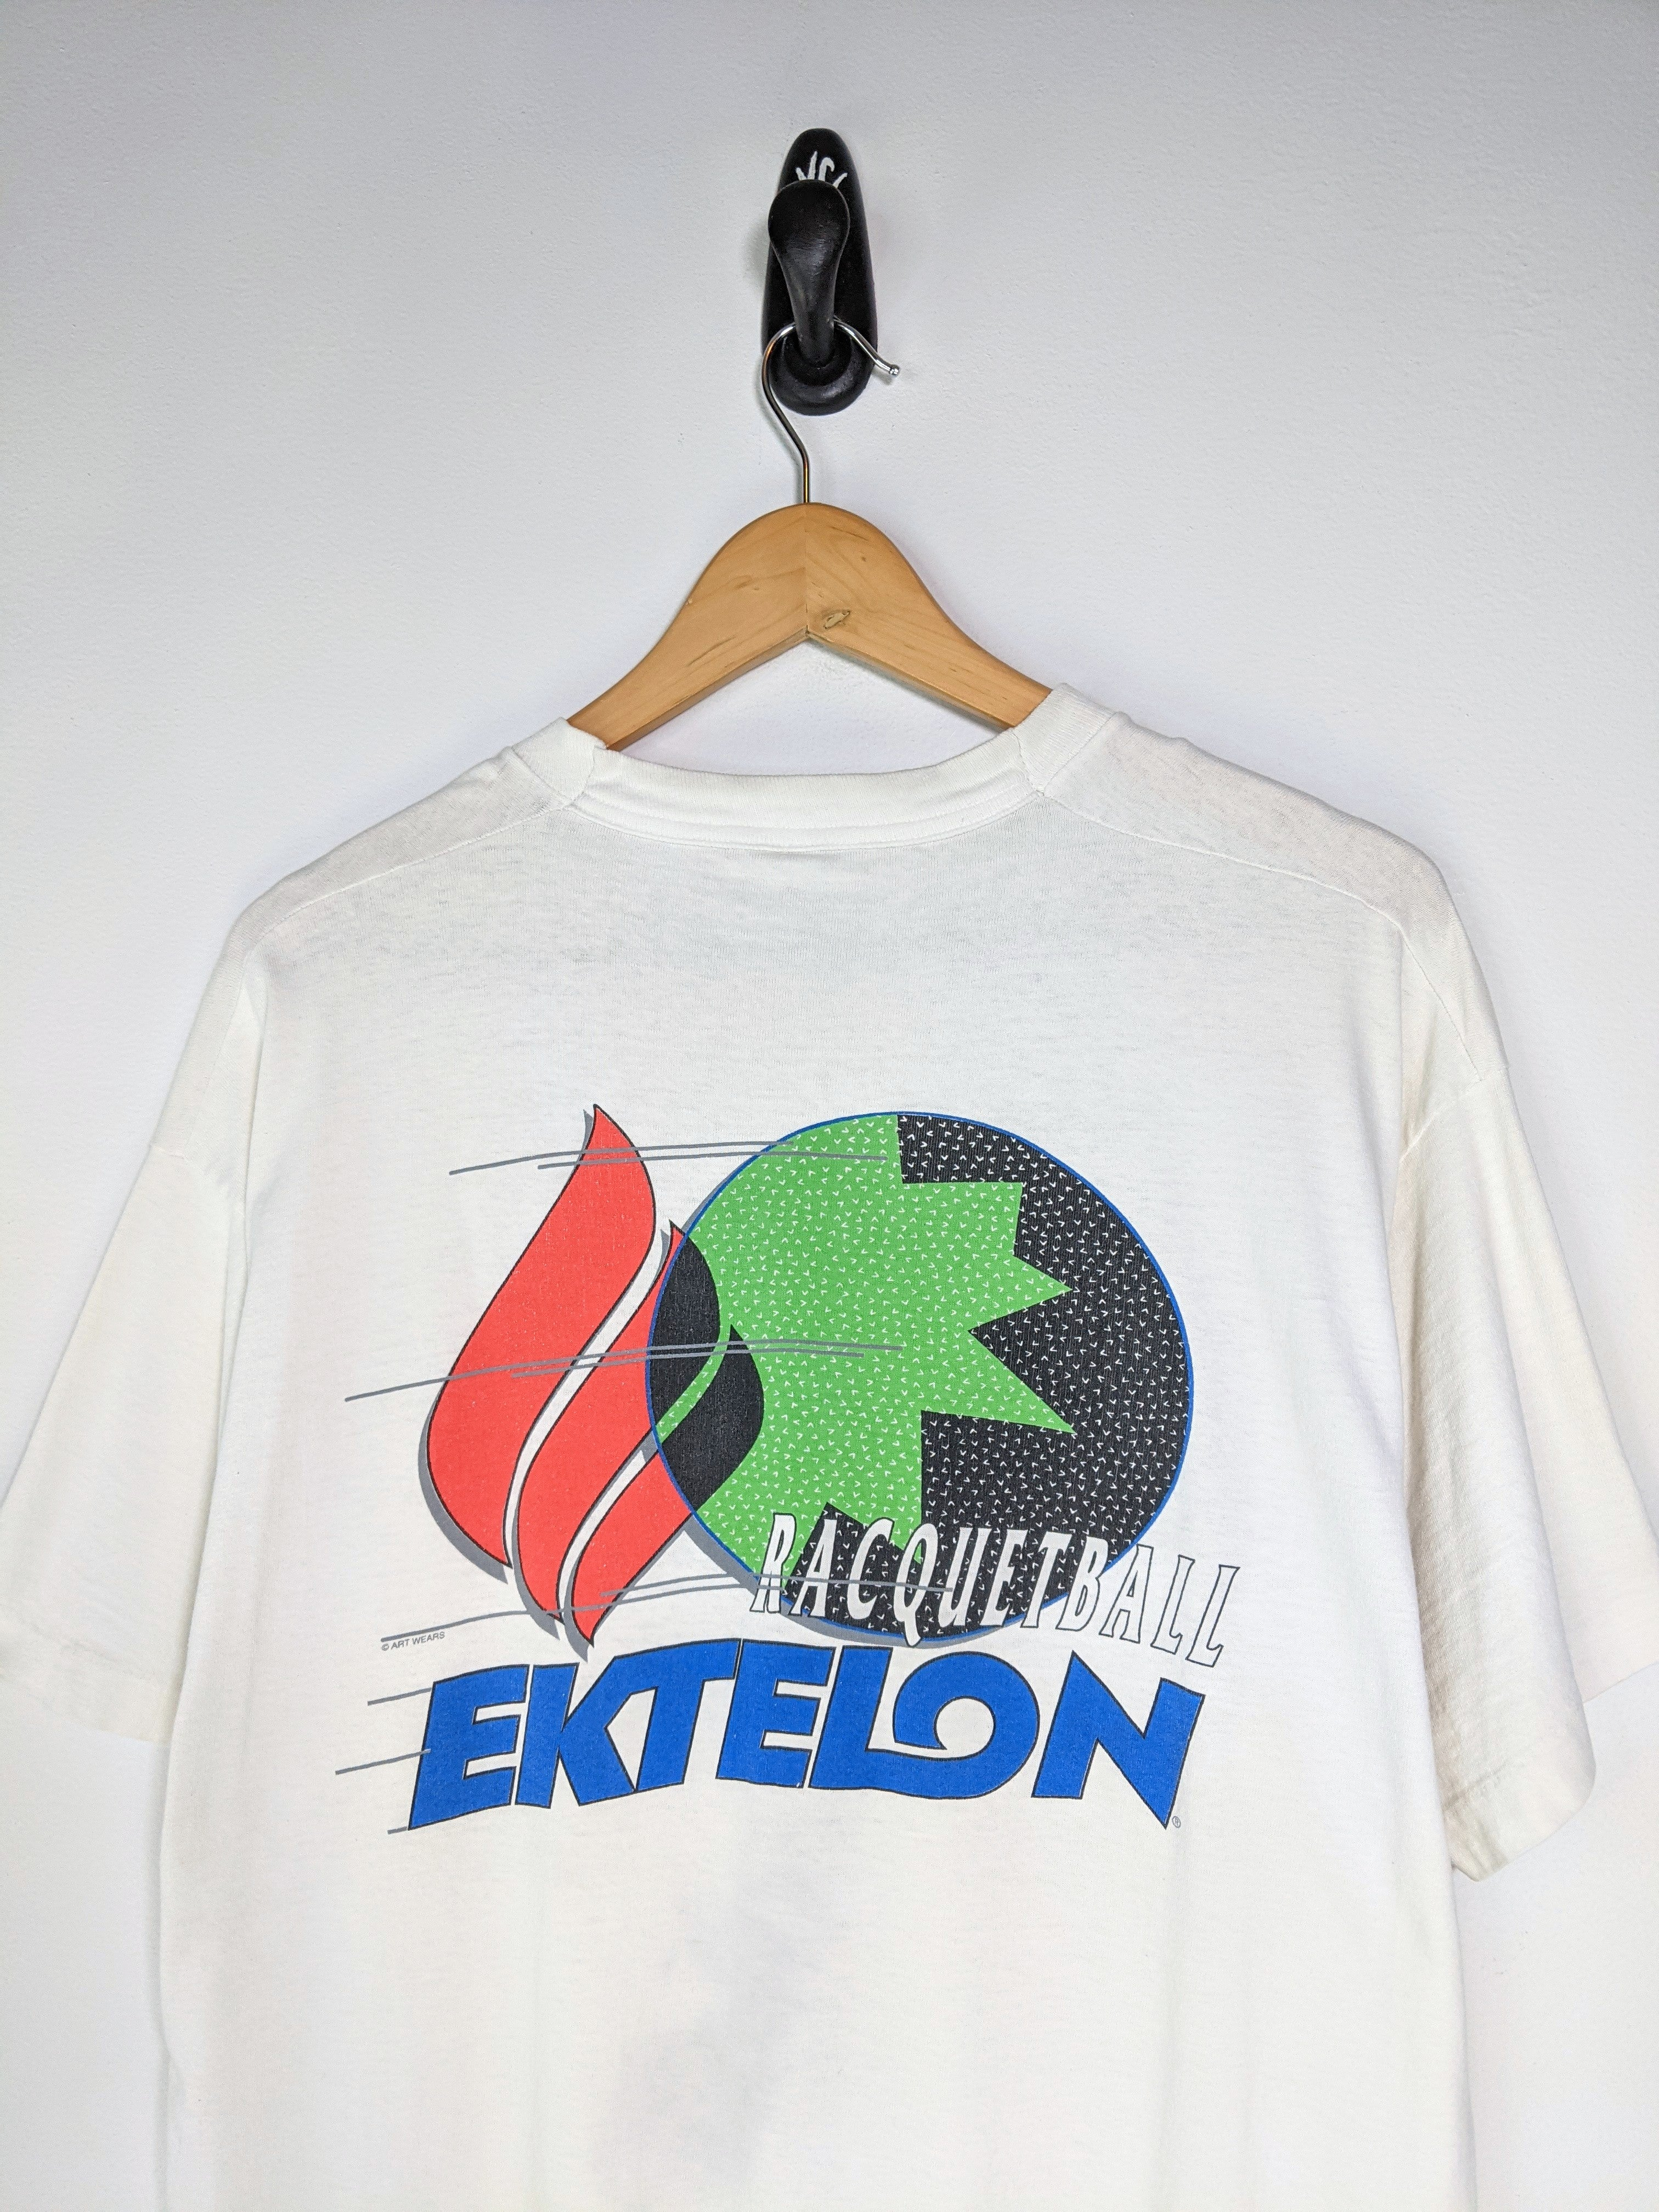 Vintage Racquetball Tee (L)